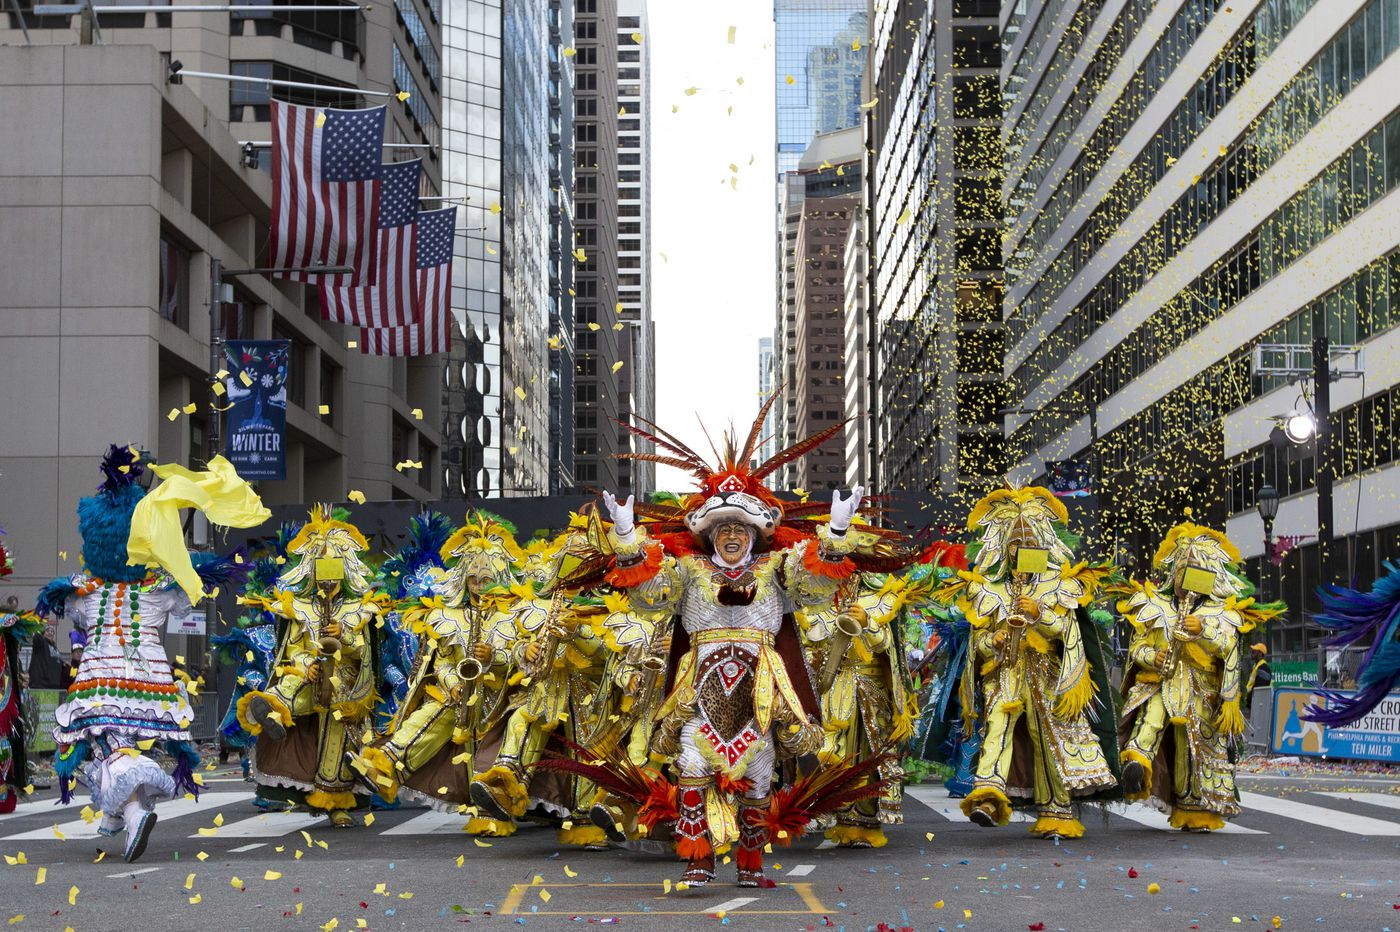 Mummers Parade 2020 Guide: How to watch, road closures, and more